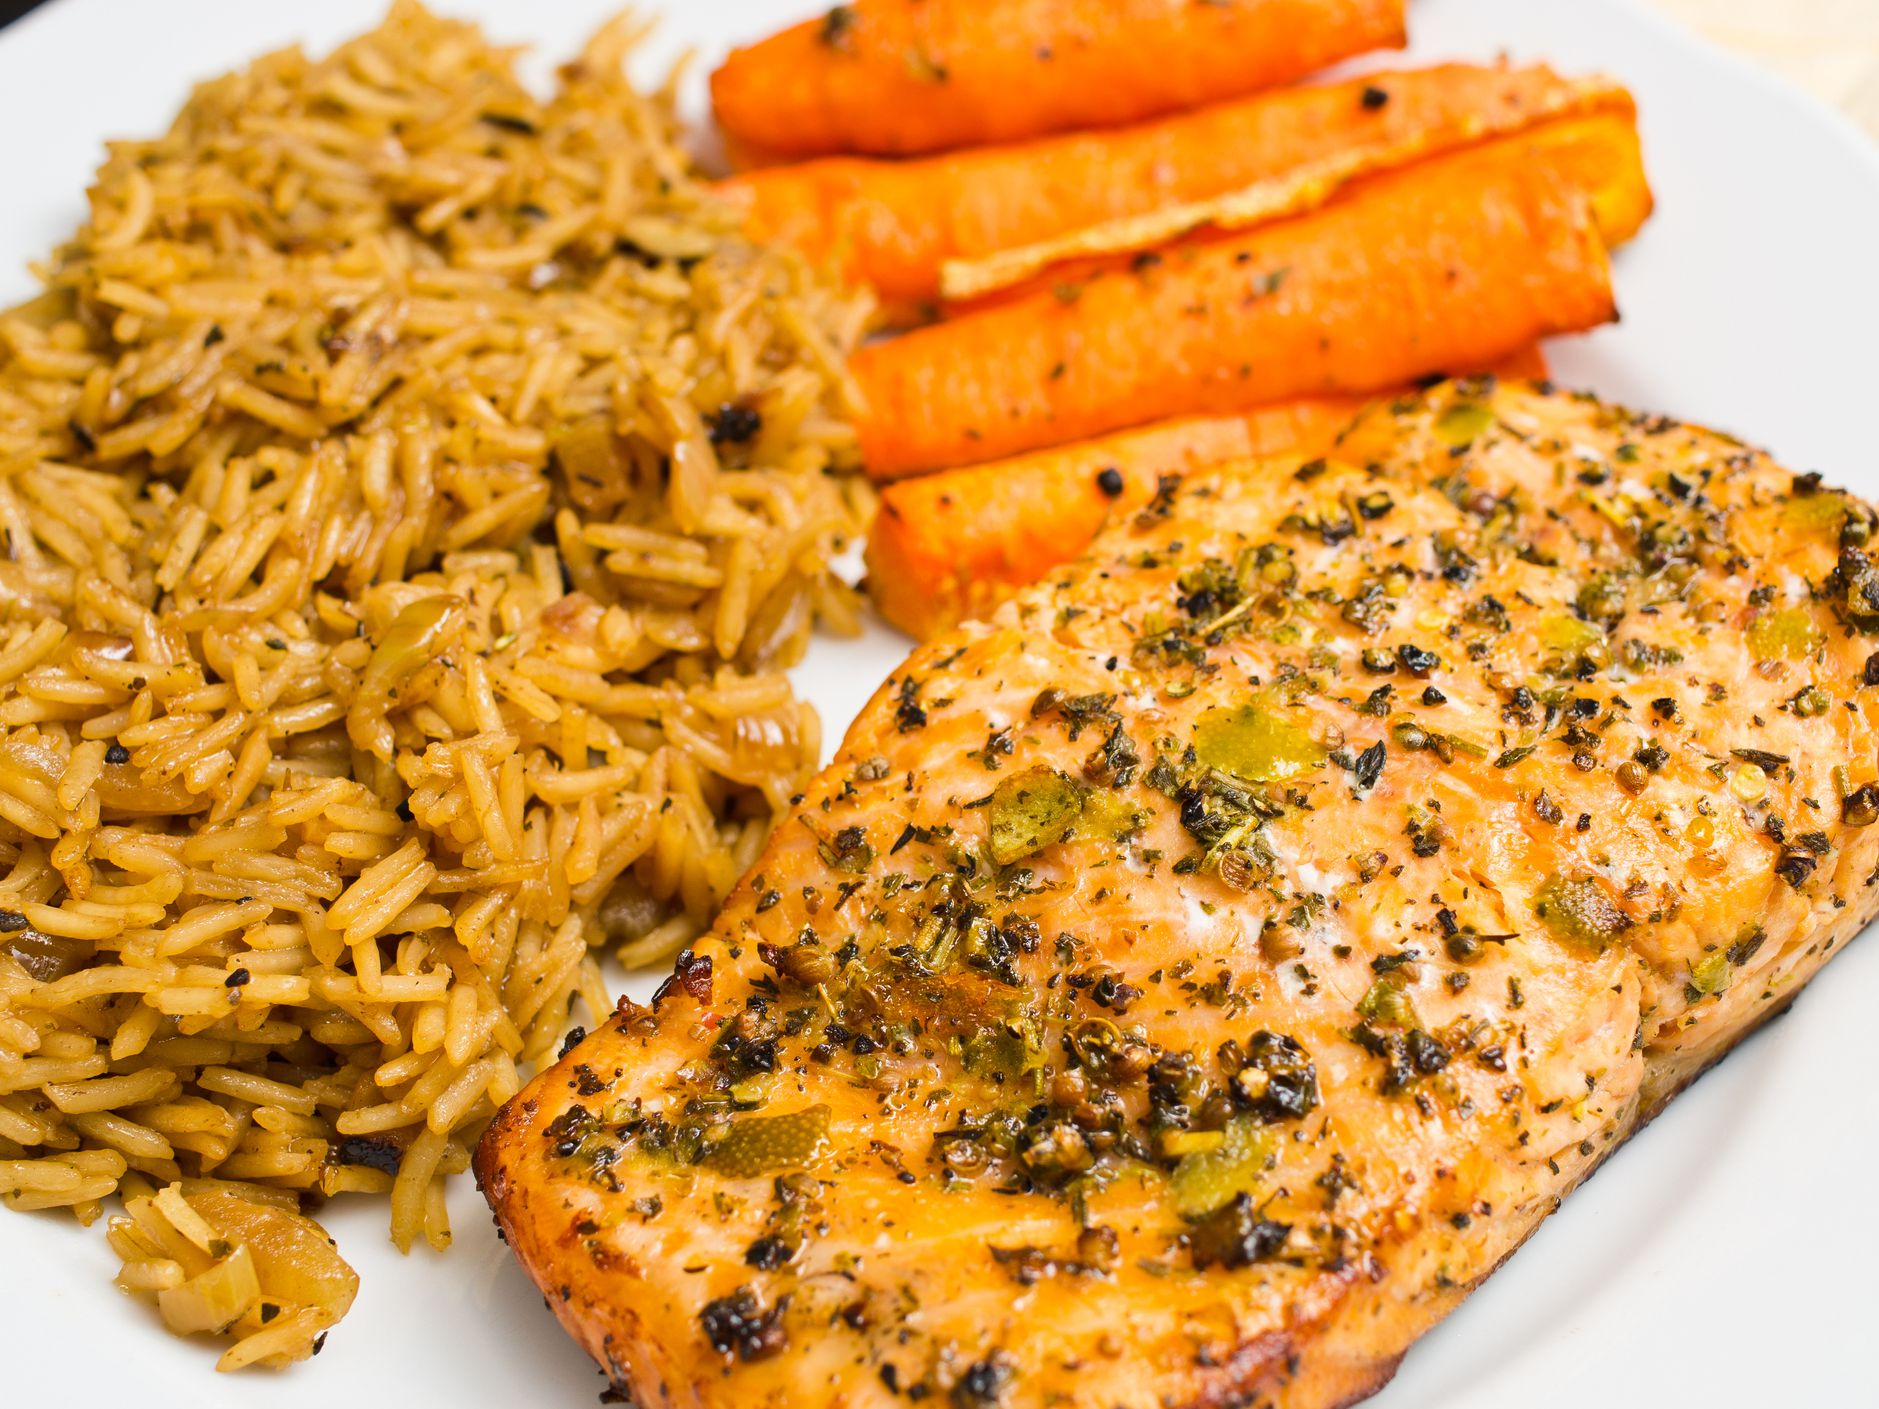 Crockpot Salmon With Caramelized Onions And Carrots Recipe